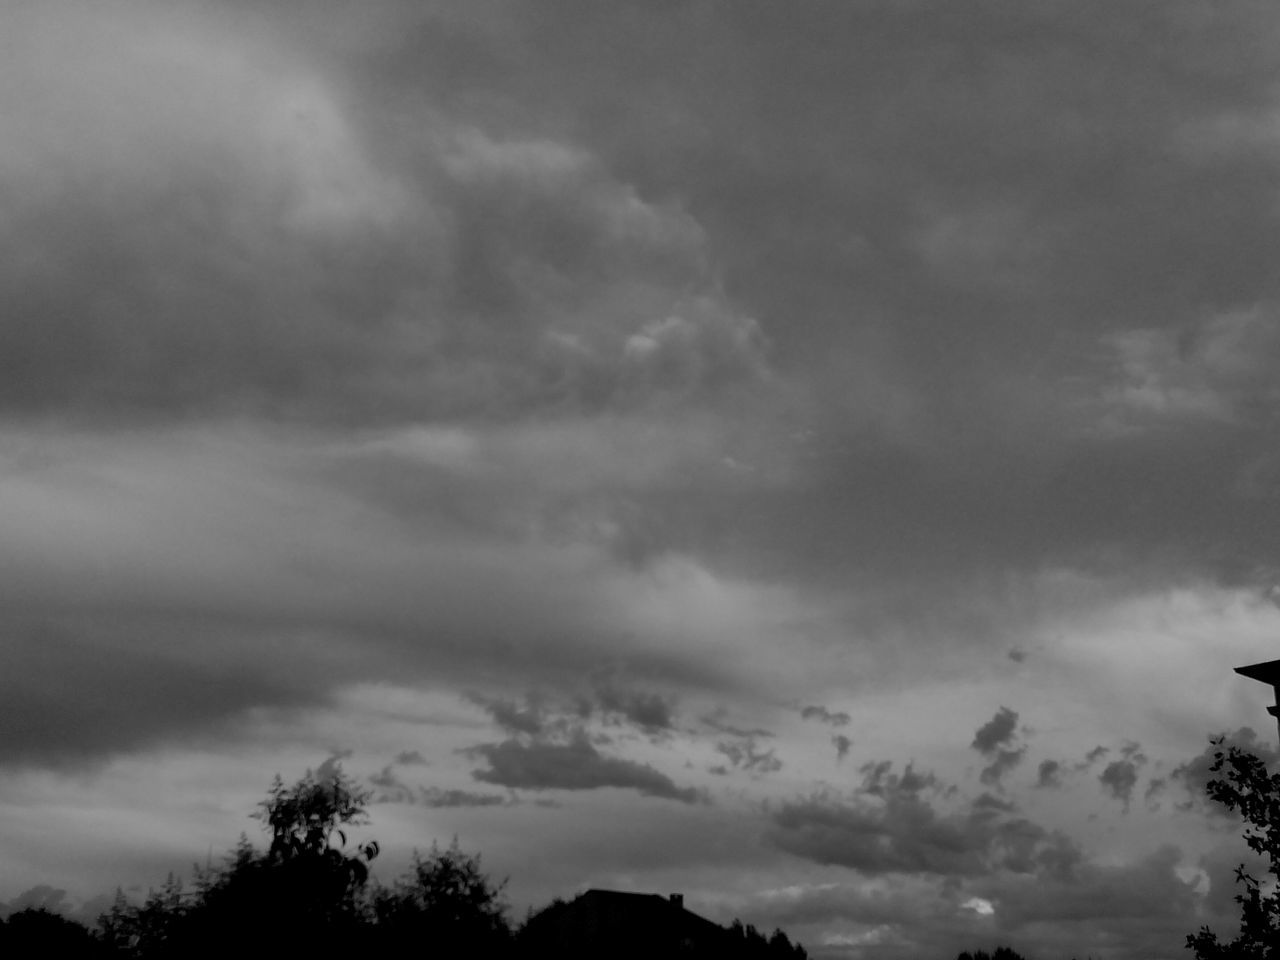 Things I Like Sky_ Collection From My Window From My Point Of View Black And White Clouds Eye4photograghy Black And White Collection  Blackandwhitephotography Eye4black&white  Black And White Nature Eye4photography  Clouds & Sky Blackandwhite Photography Eyeem Black And White Black And White Photography Clouds Black And White Sky Sky_collection Eye4nature Eyeem Black And White Photography Nature Check This Out Eyeem Sky Eyeem Clouds And Sky Blackandwhite